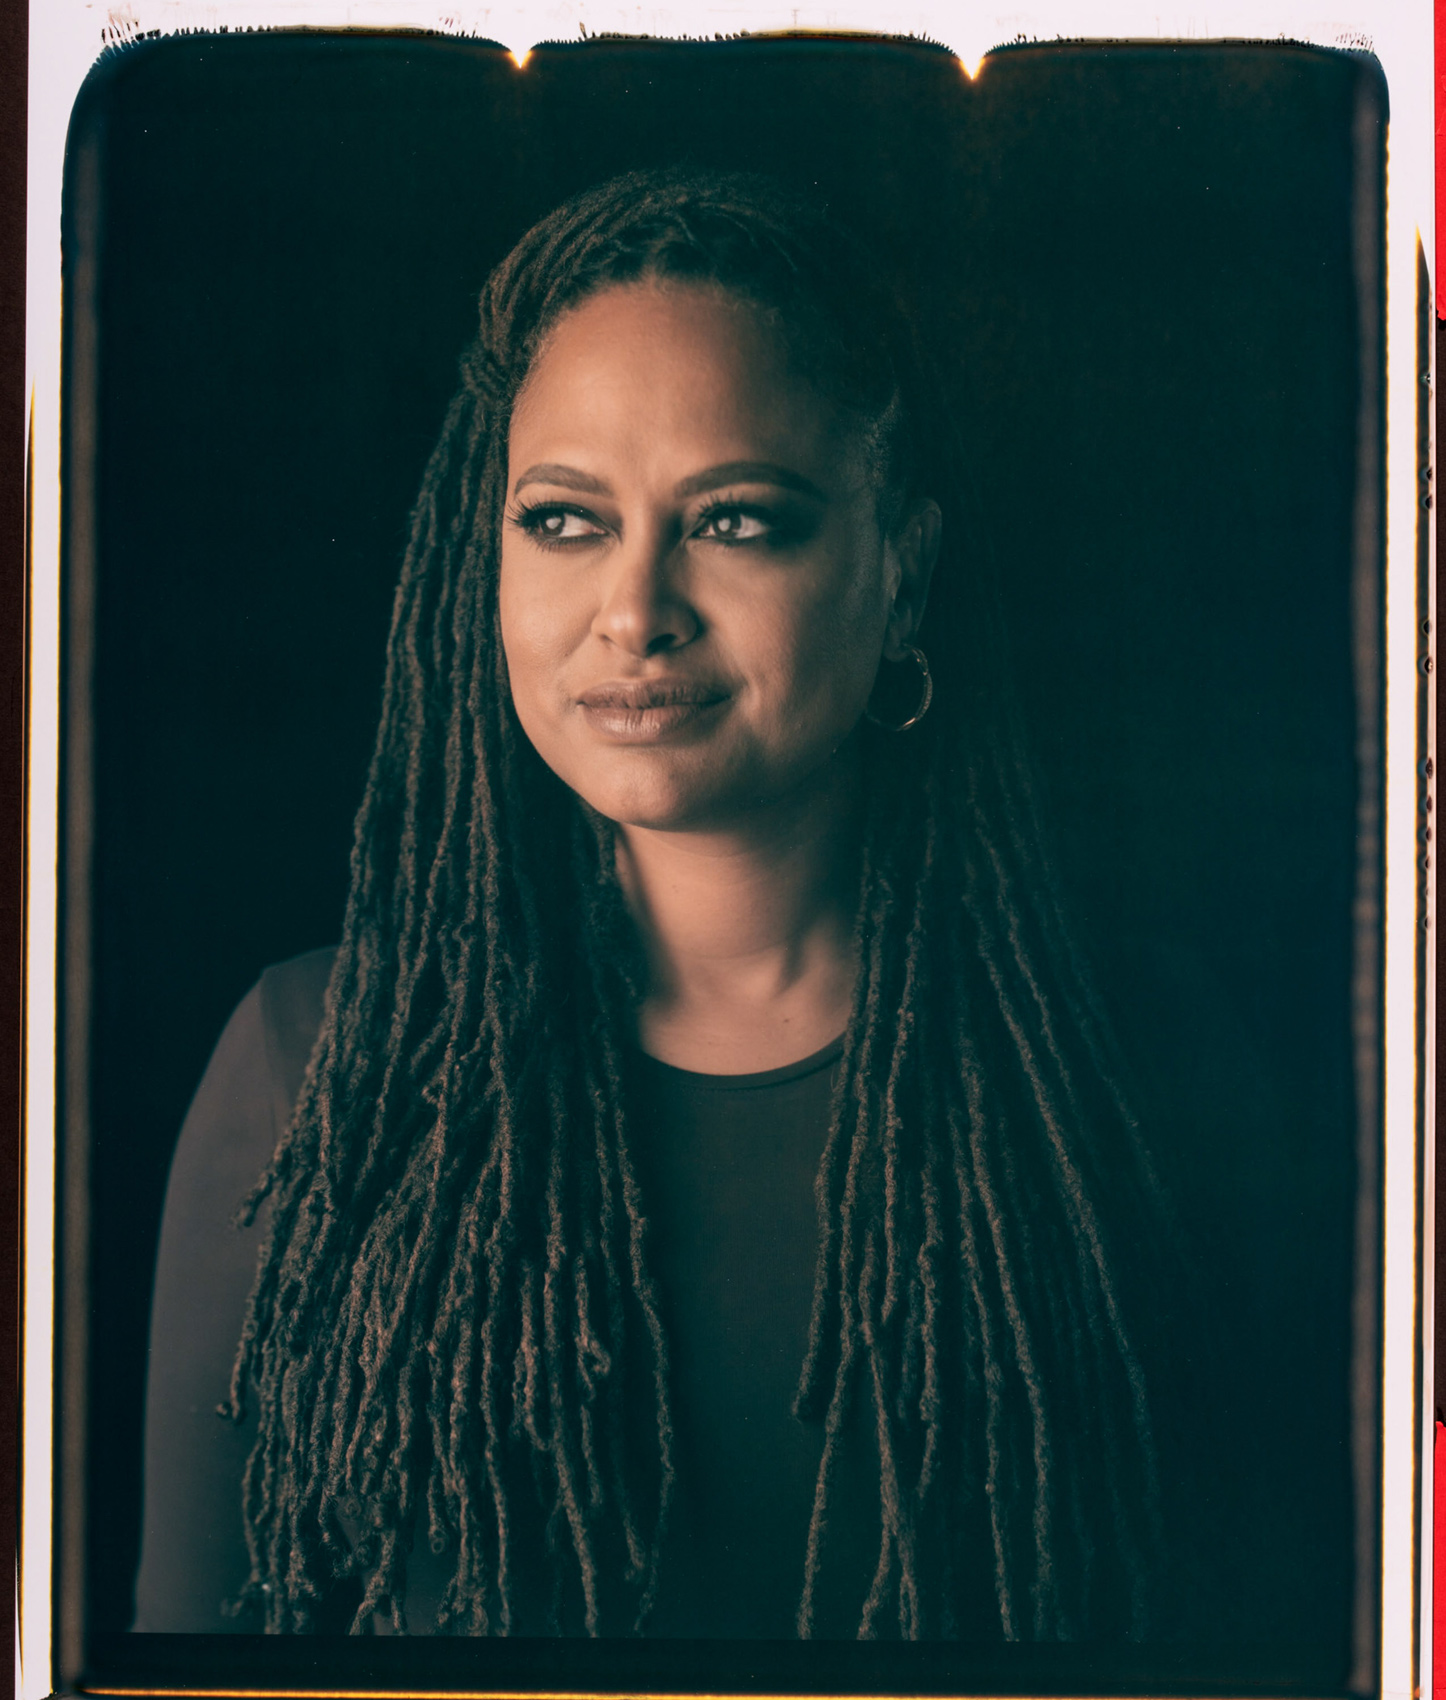 POL-Ava-Duvernay-Polaroid-2016-added2020